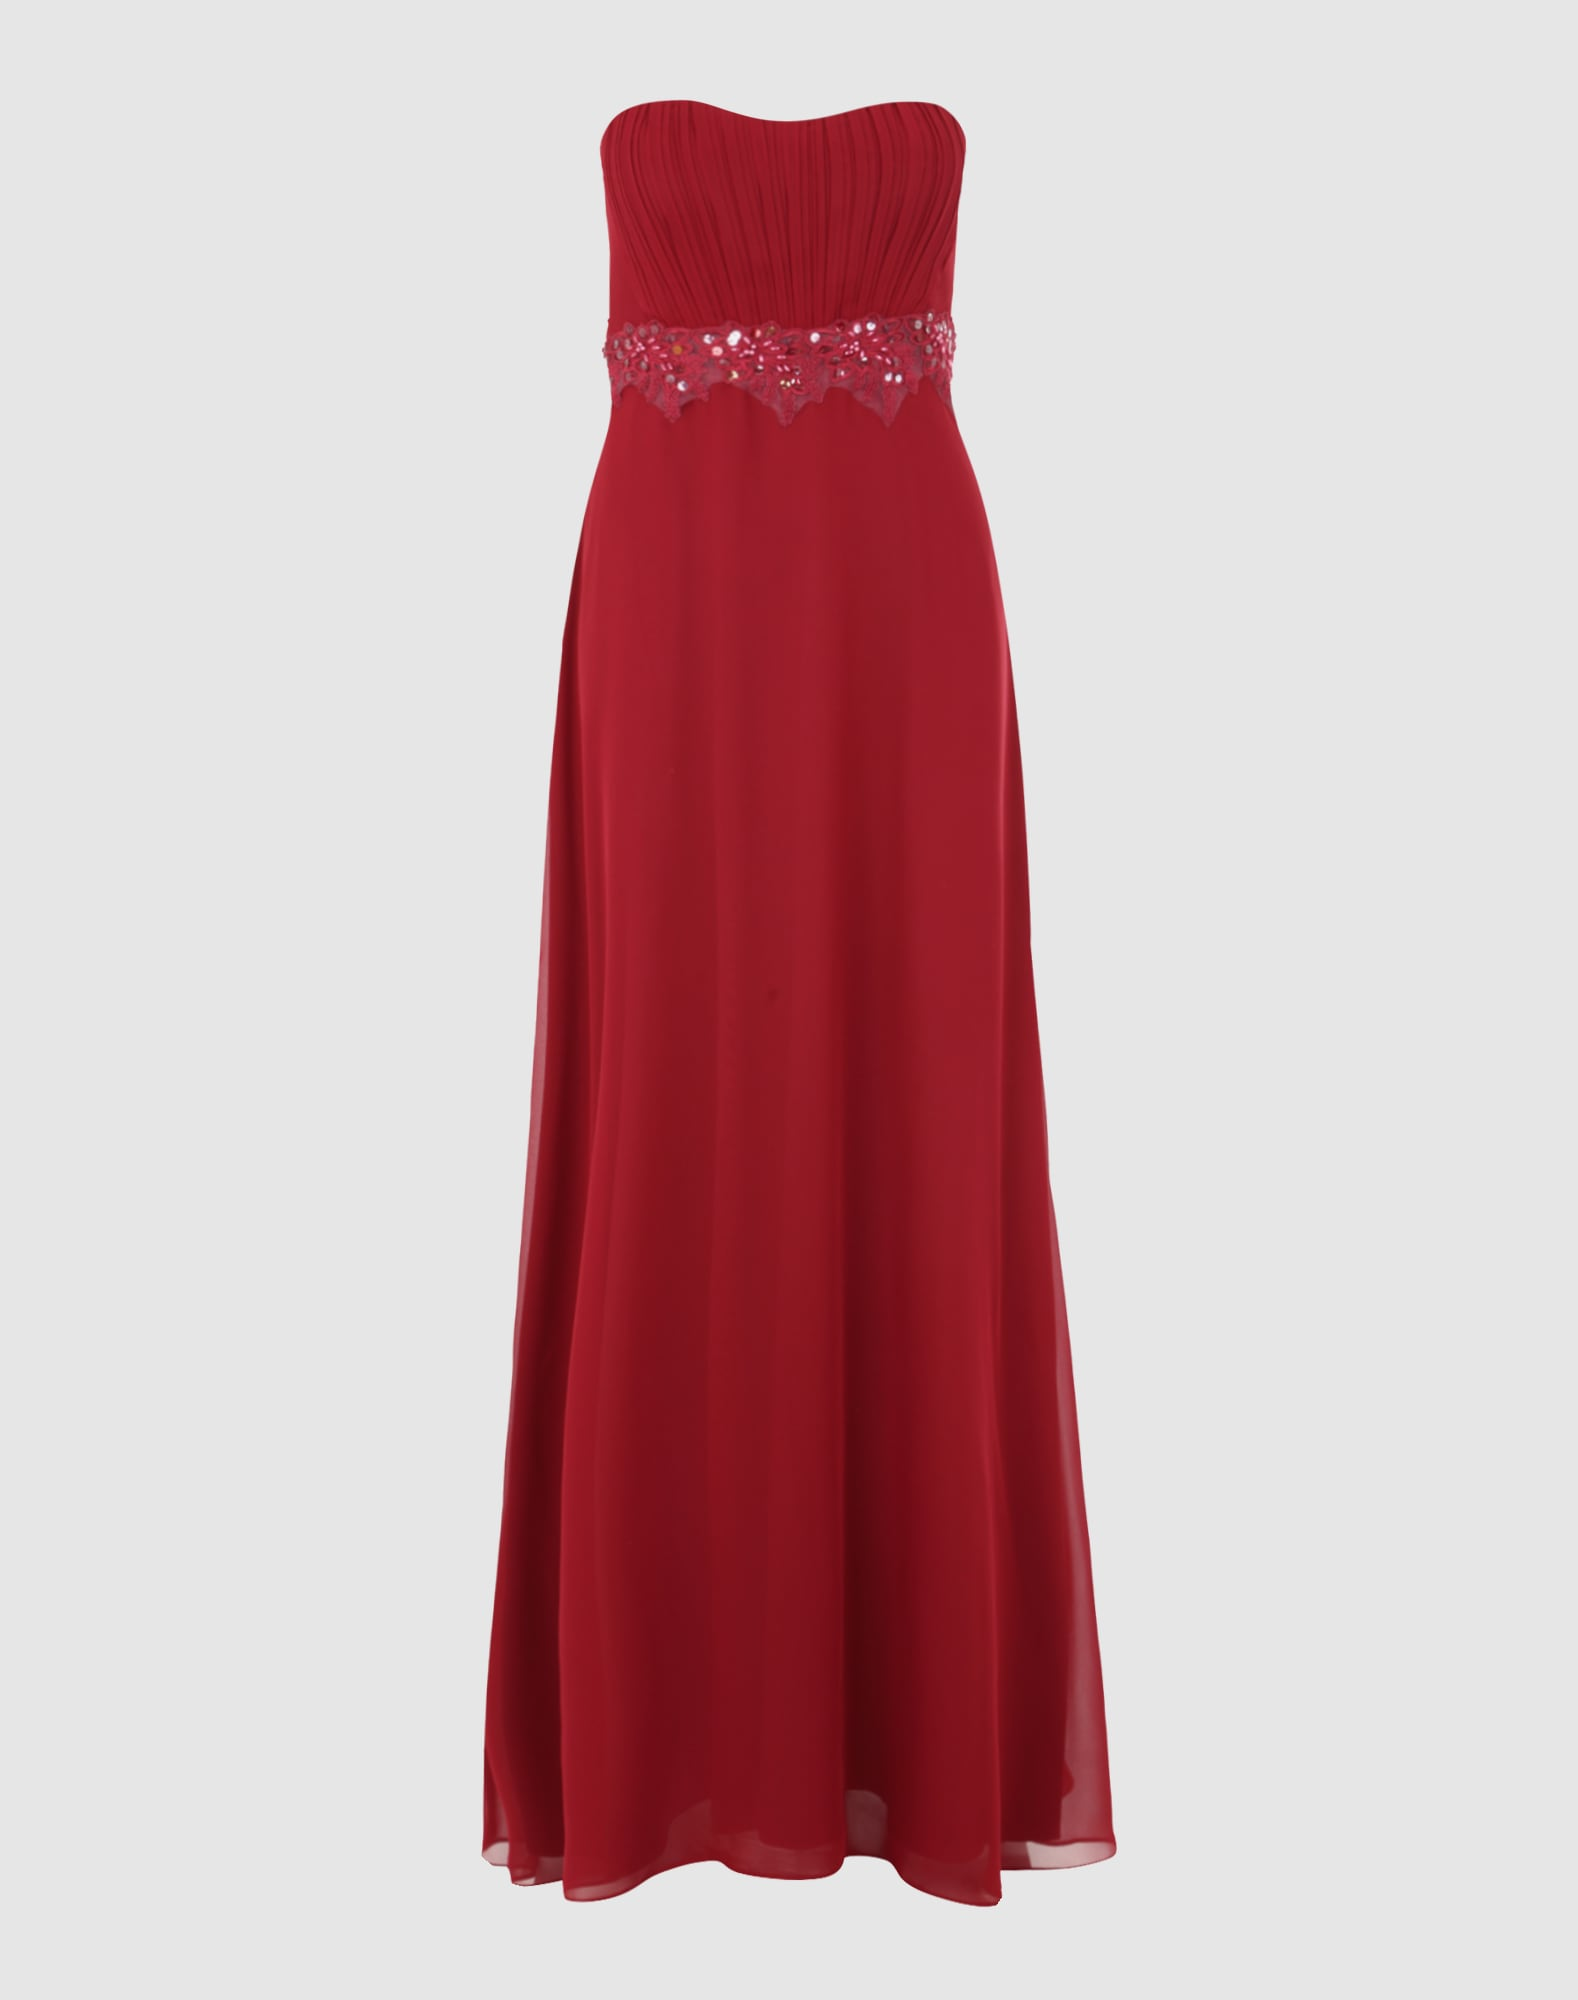 vm vera mont langes abendkleid in rot | about you